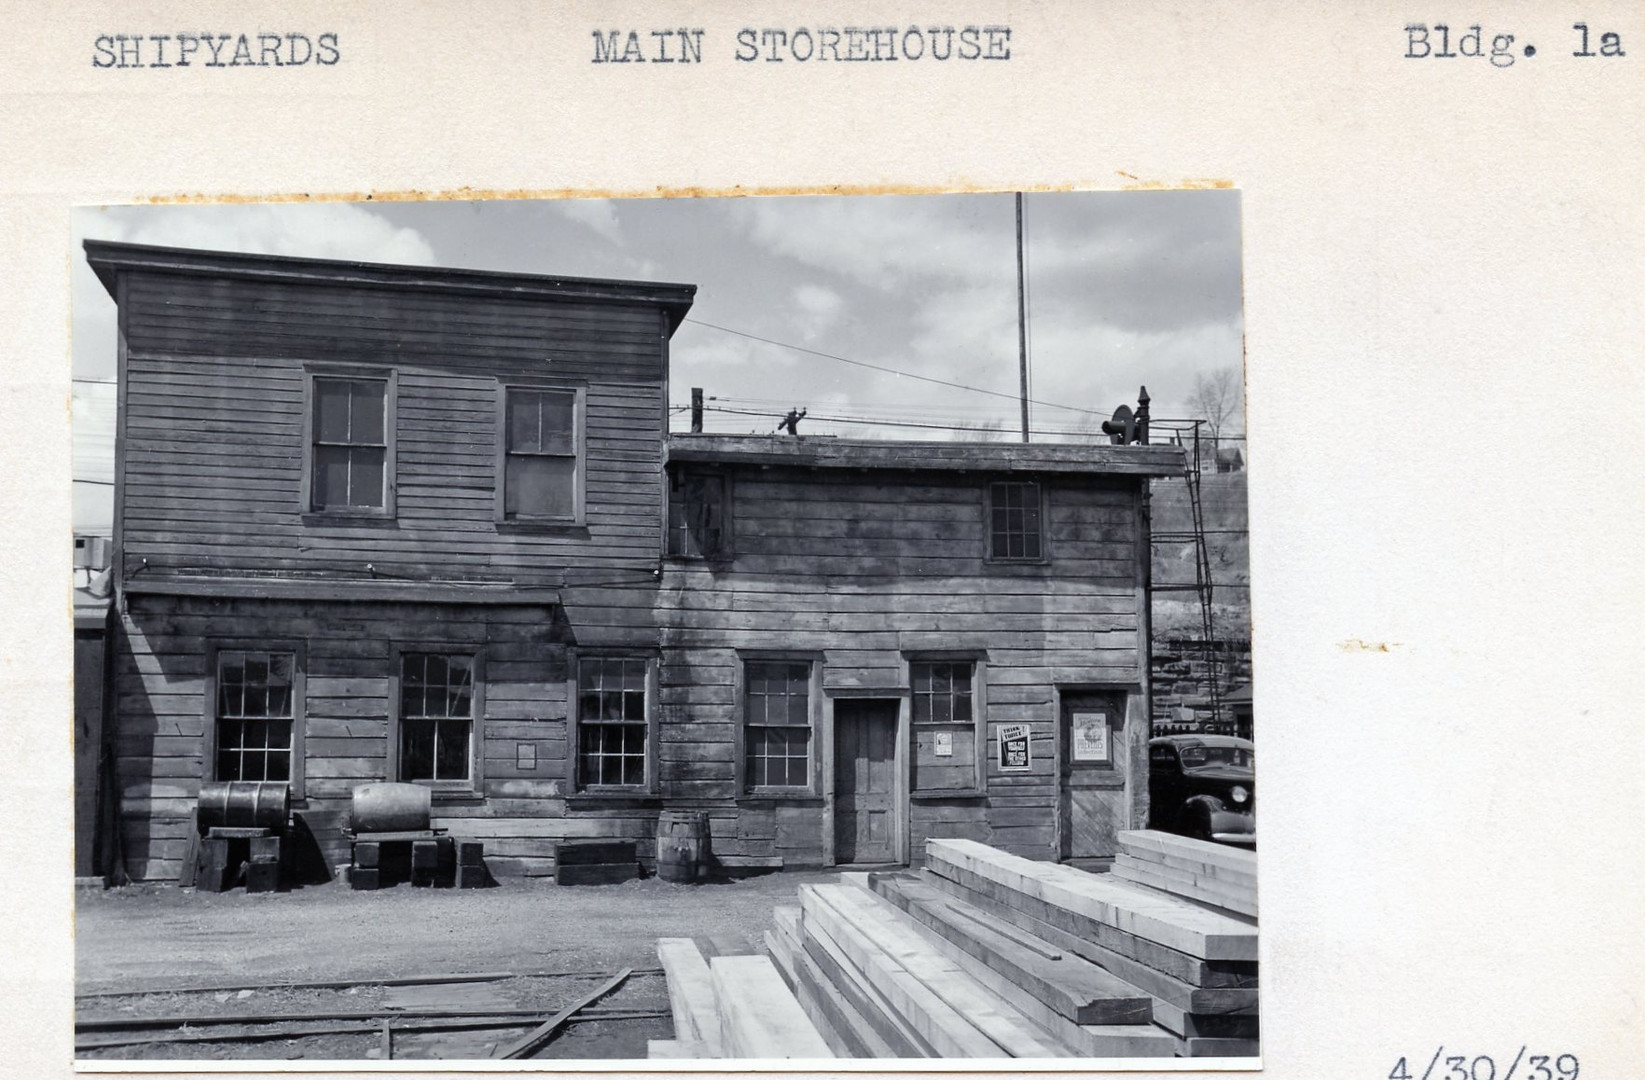 Shipyards, Main Storehouse, Building 1a, 4/30/39